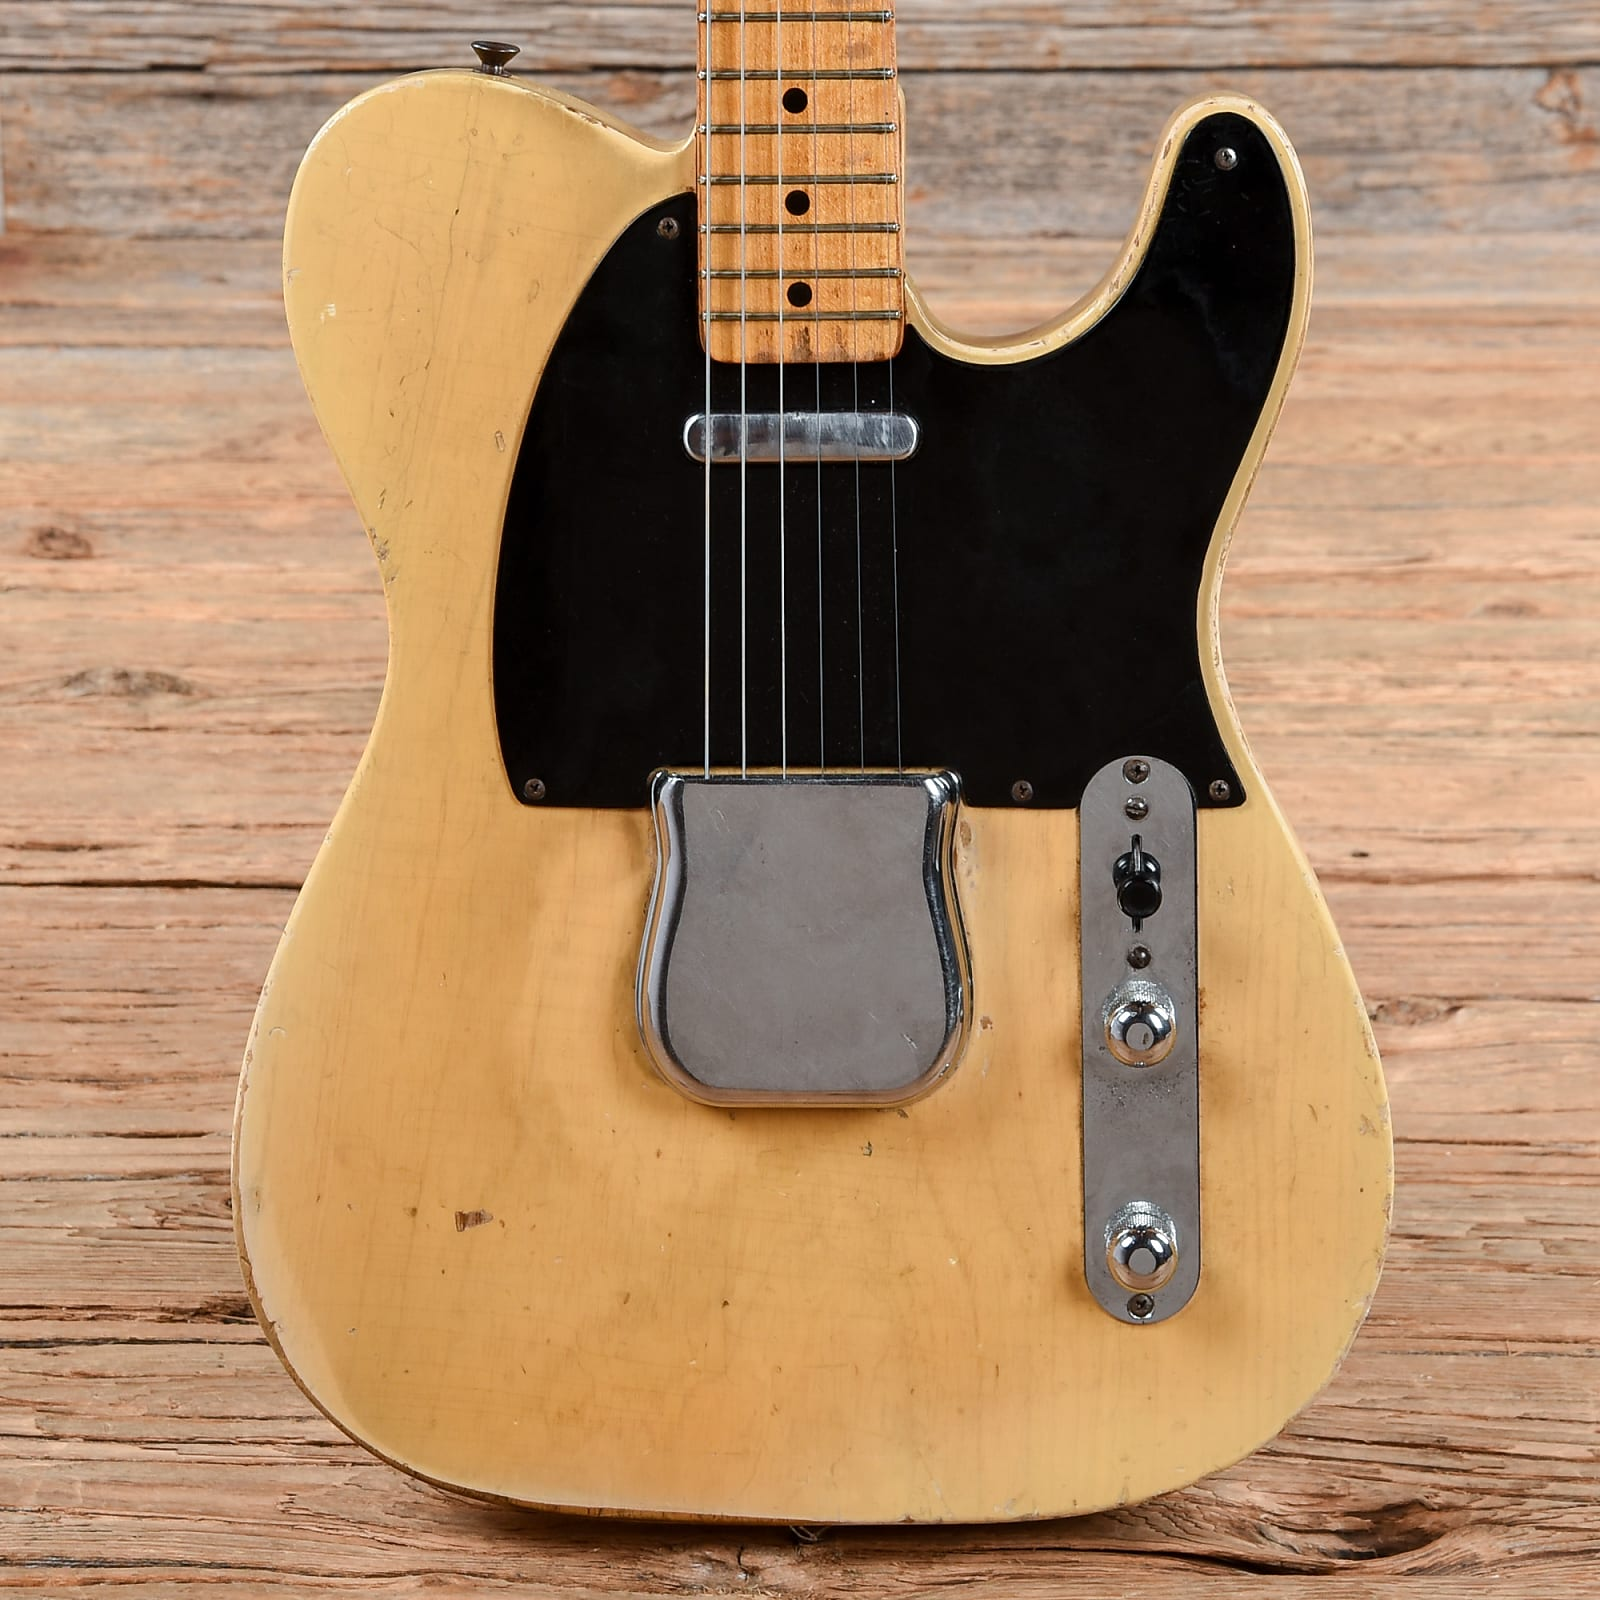 Fender Telecaster Butterscotch Blonde 1953